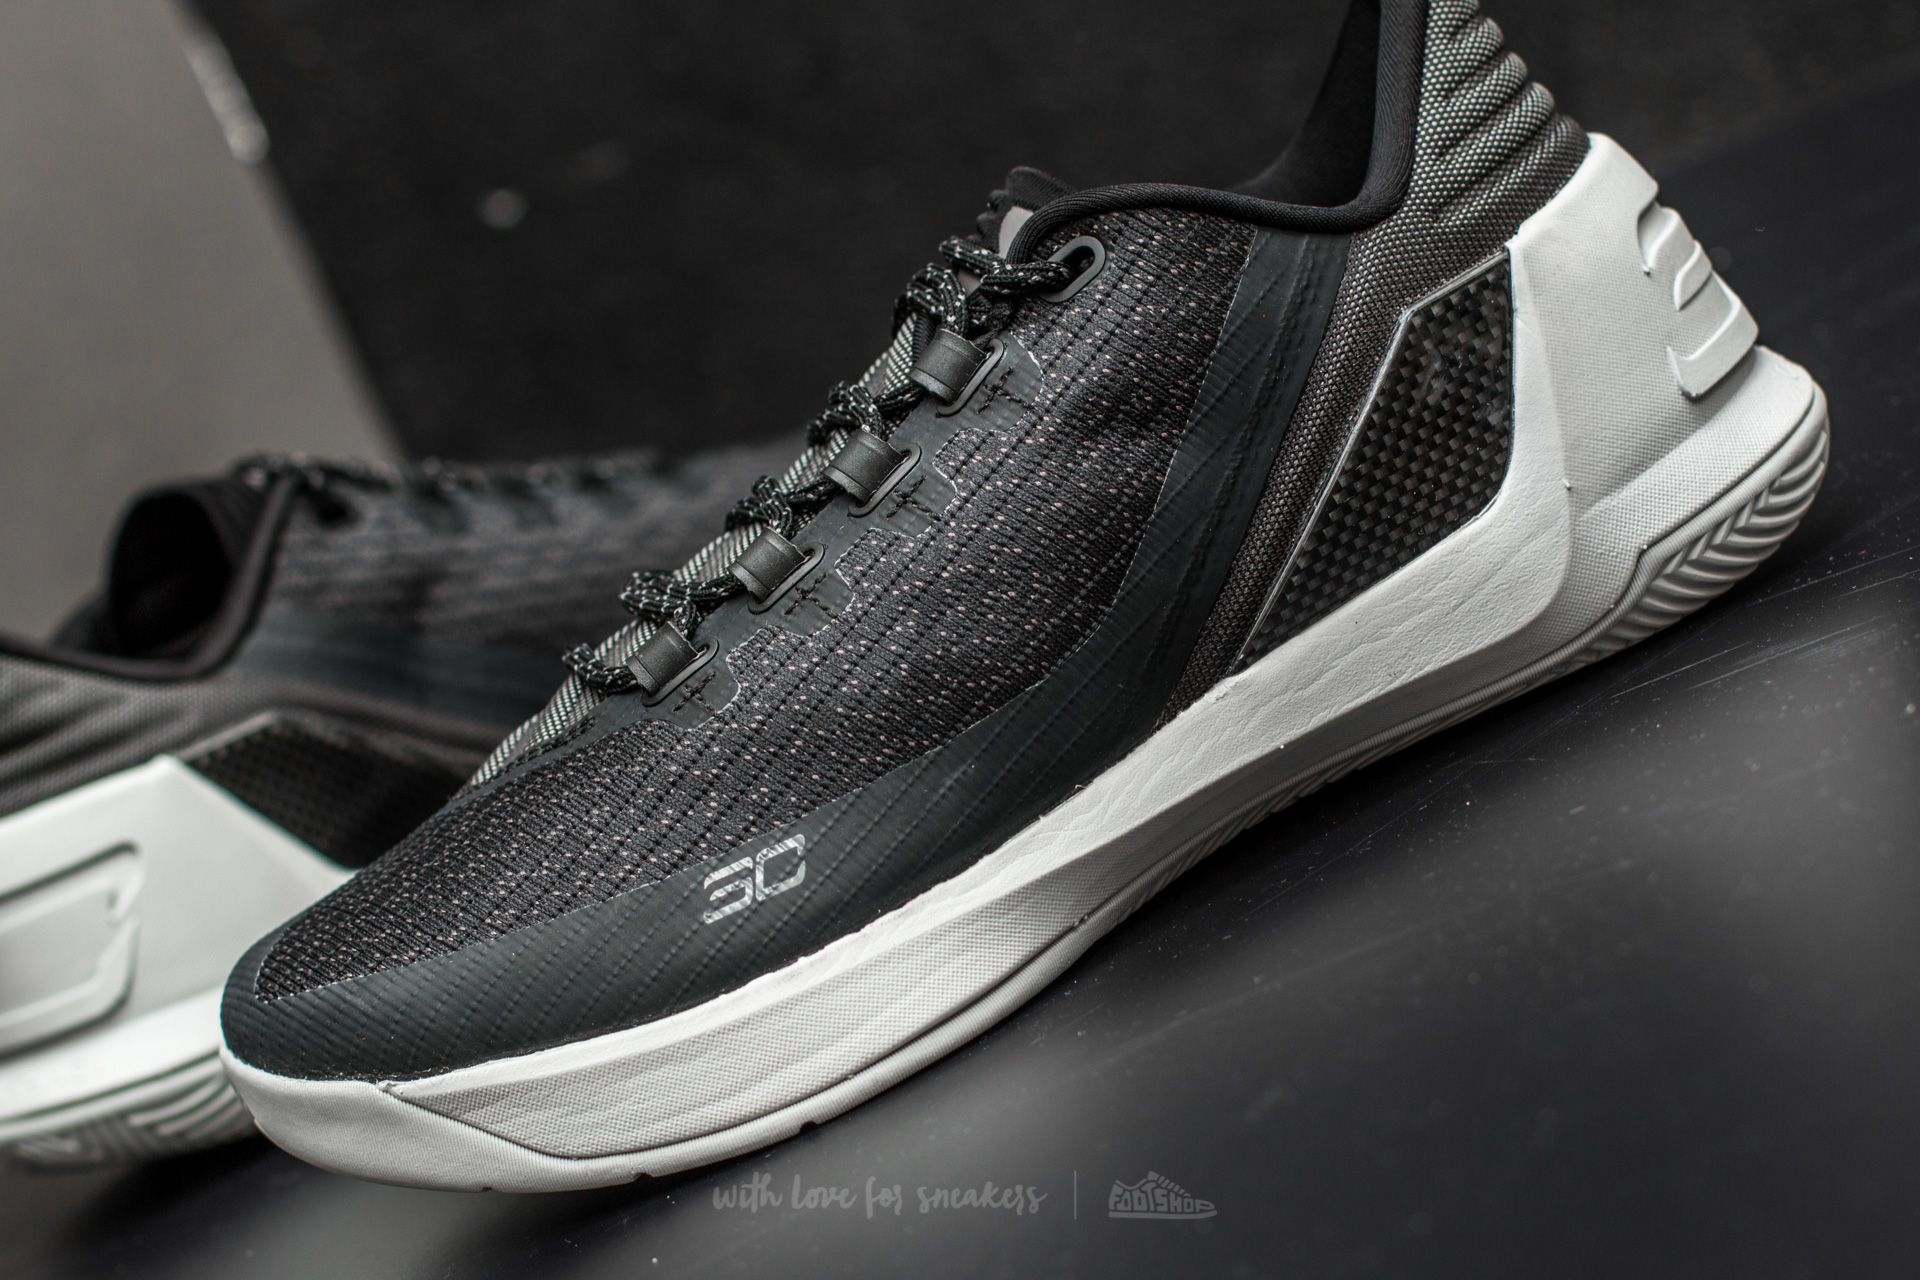 44da5dabc40 ... sweden under armour curry 3 low black white white at a great price 83  e22ec 39beb